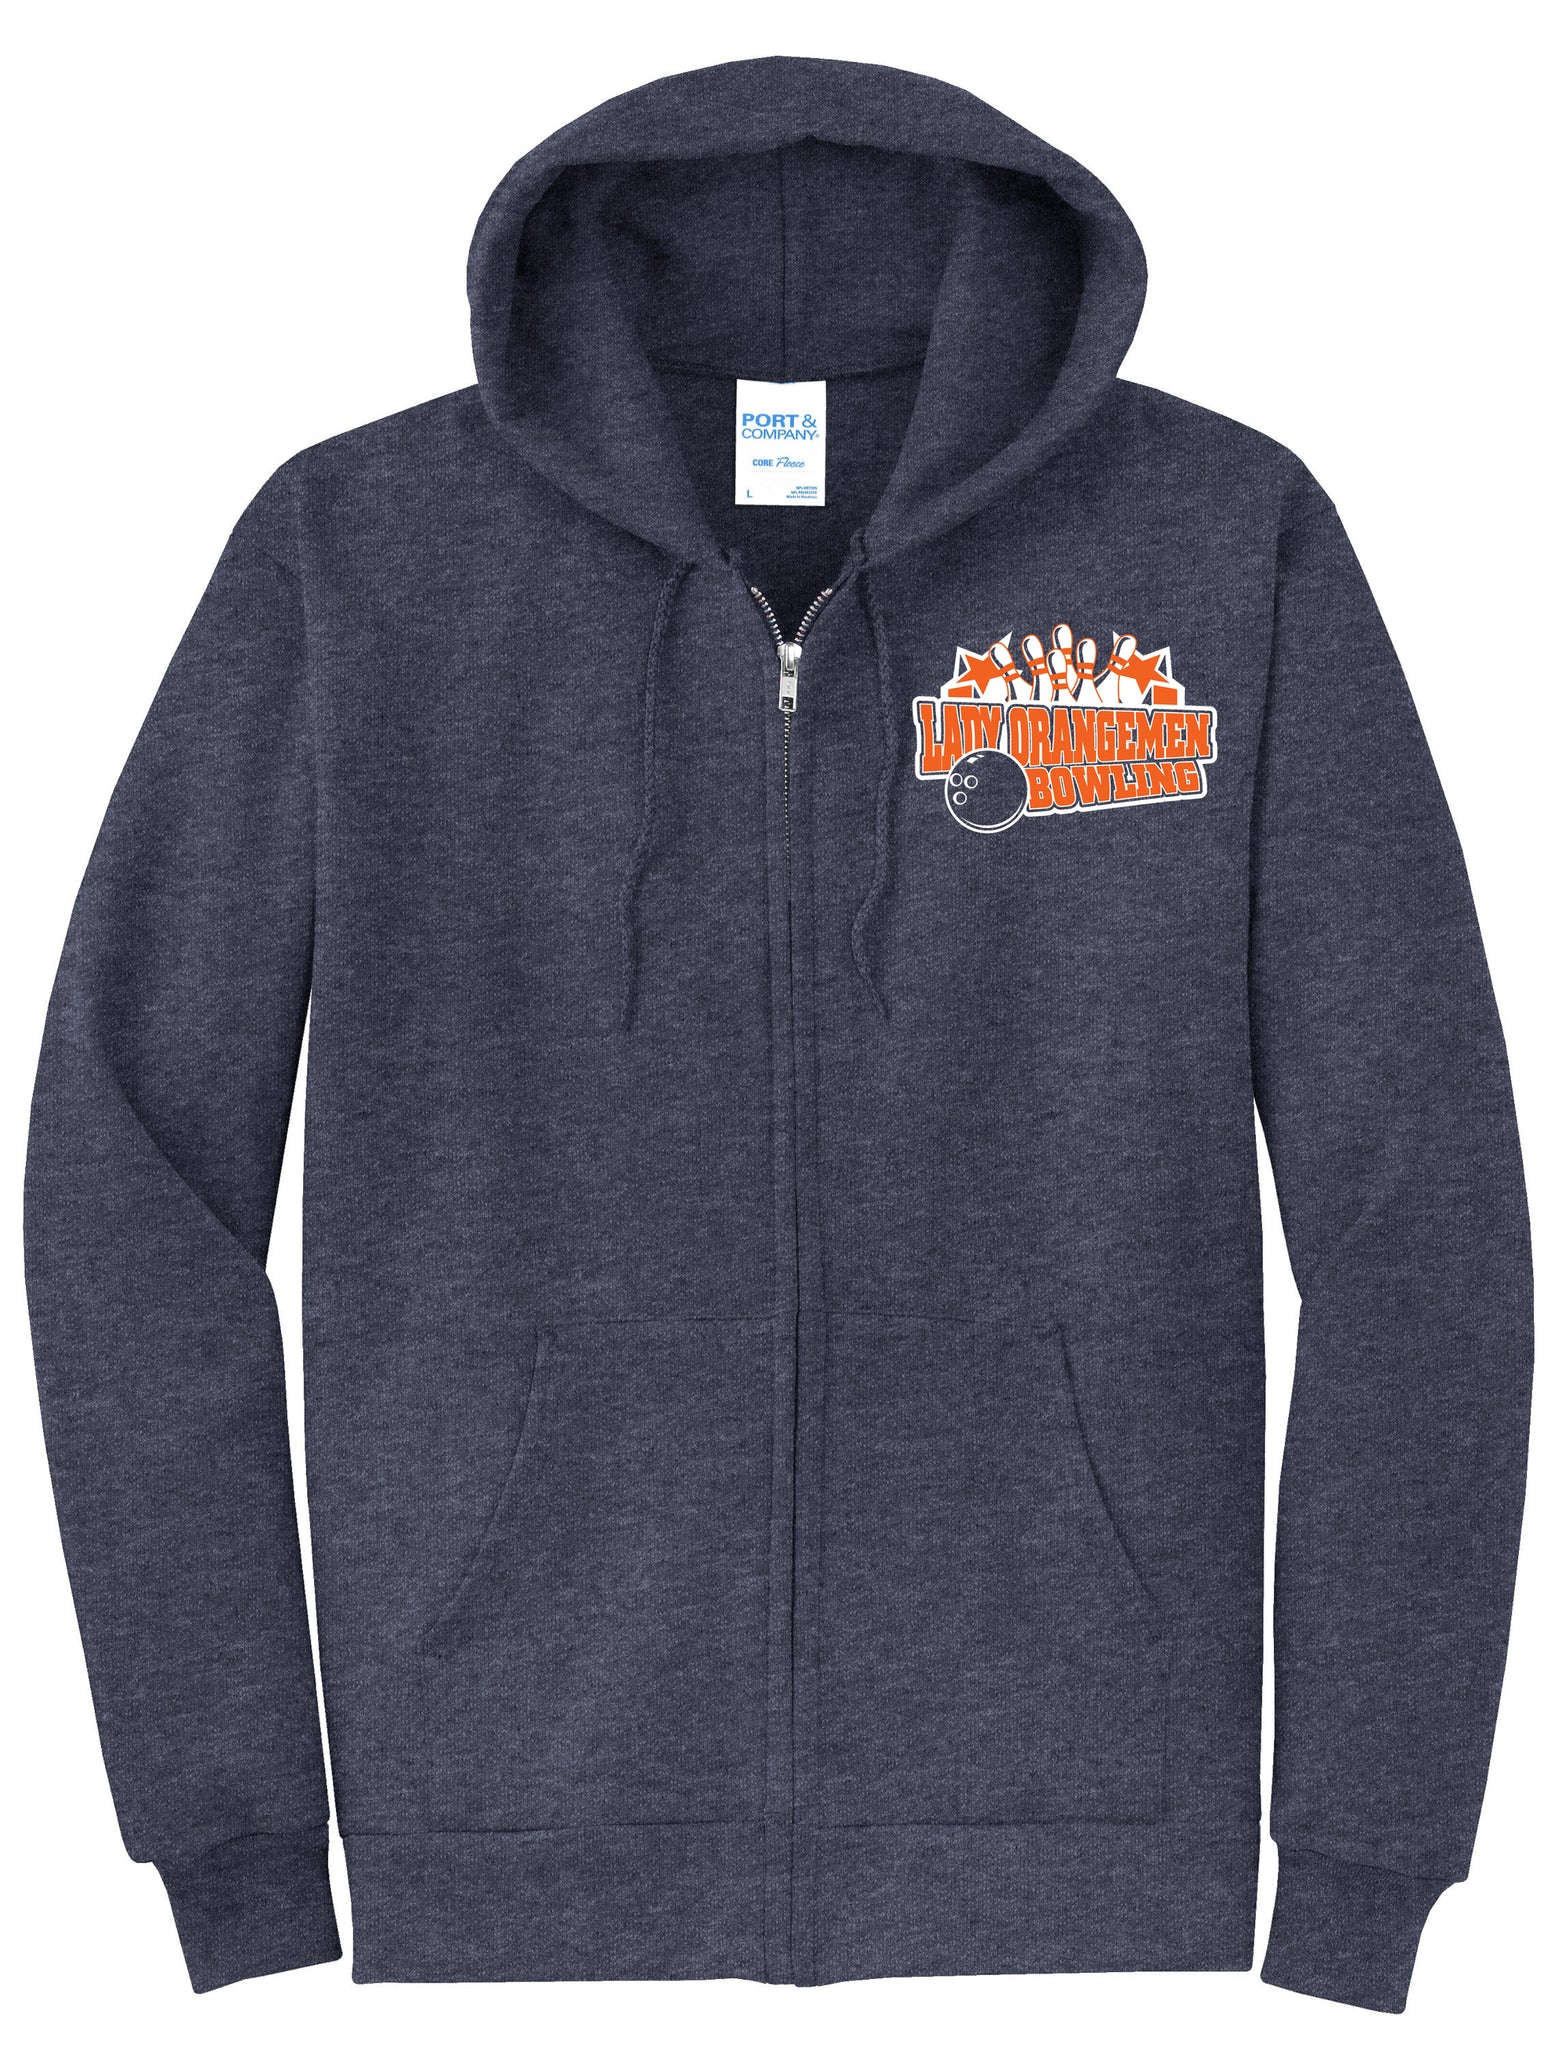 Lady Orangemen Zip Up Sweatshirt